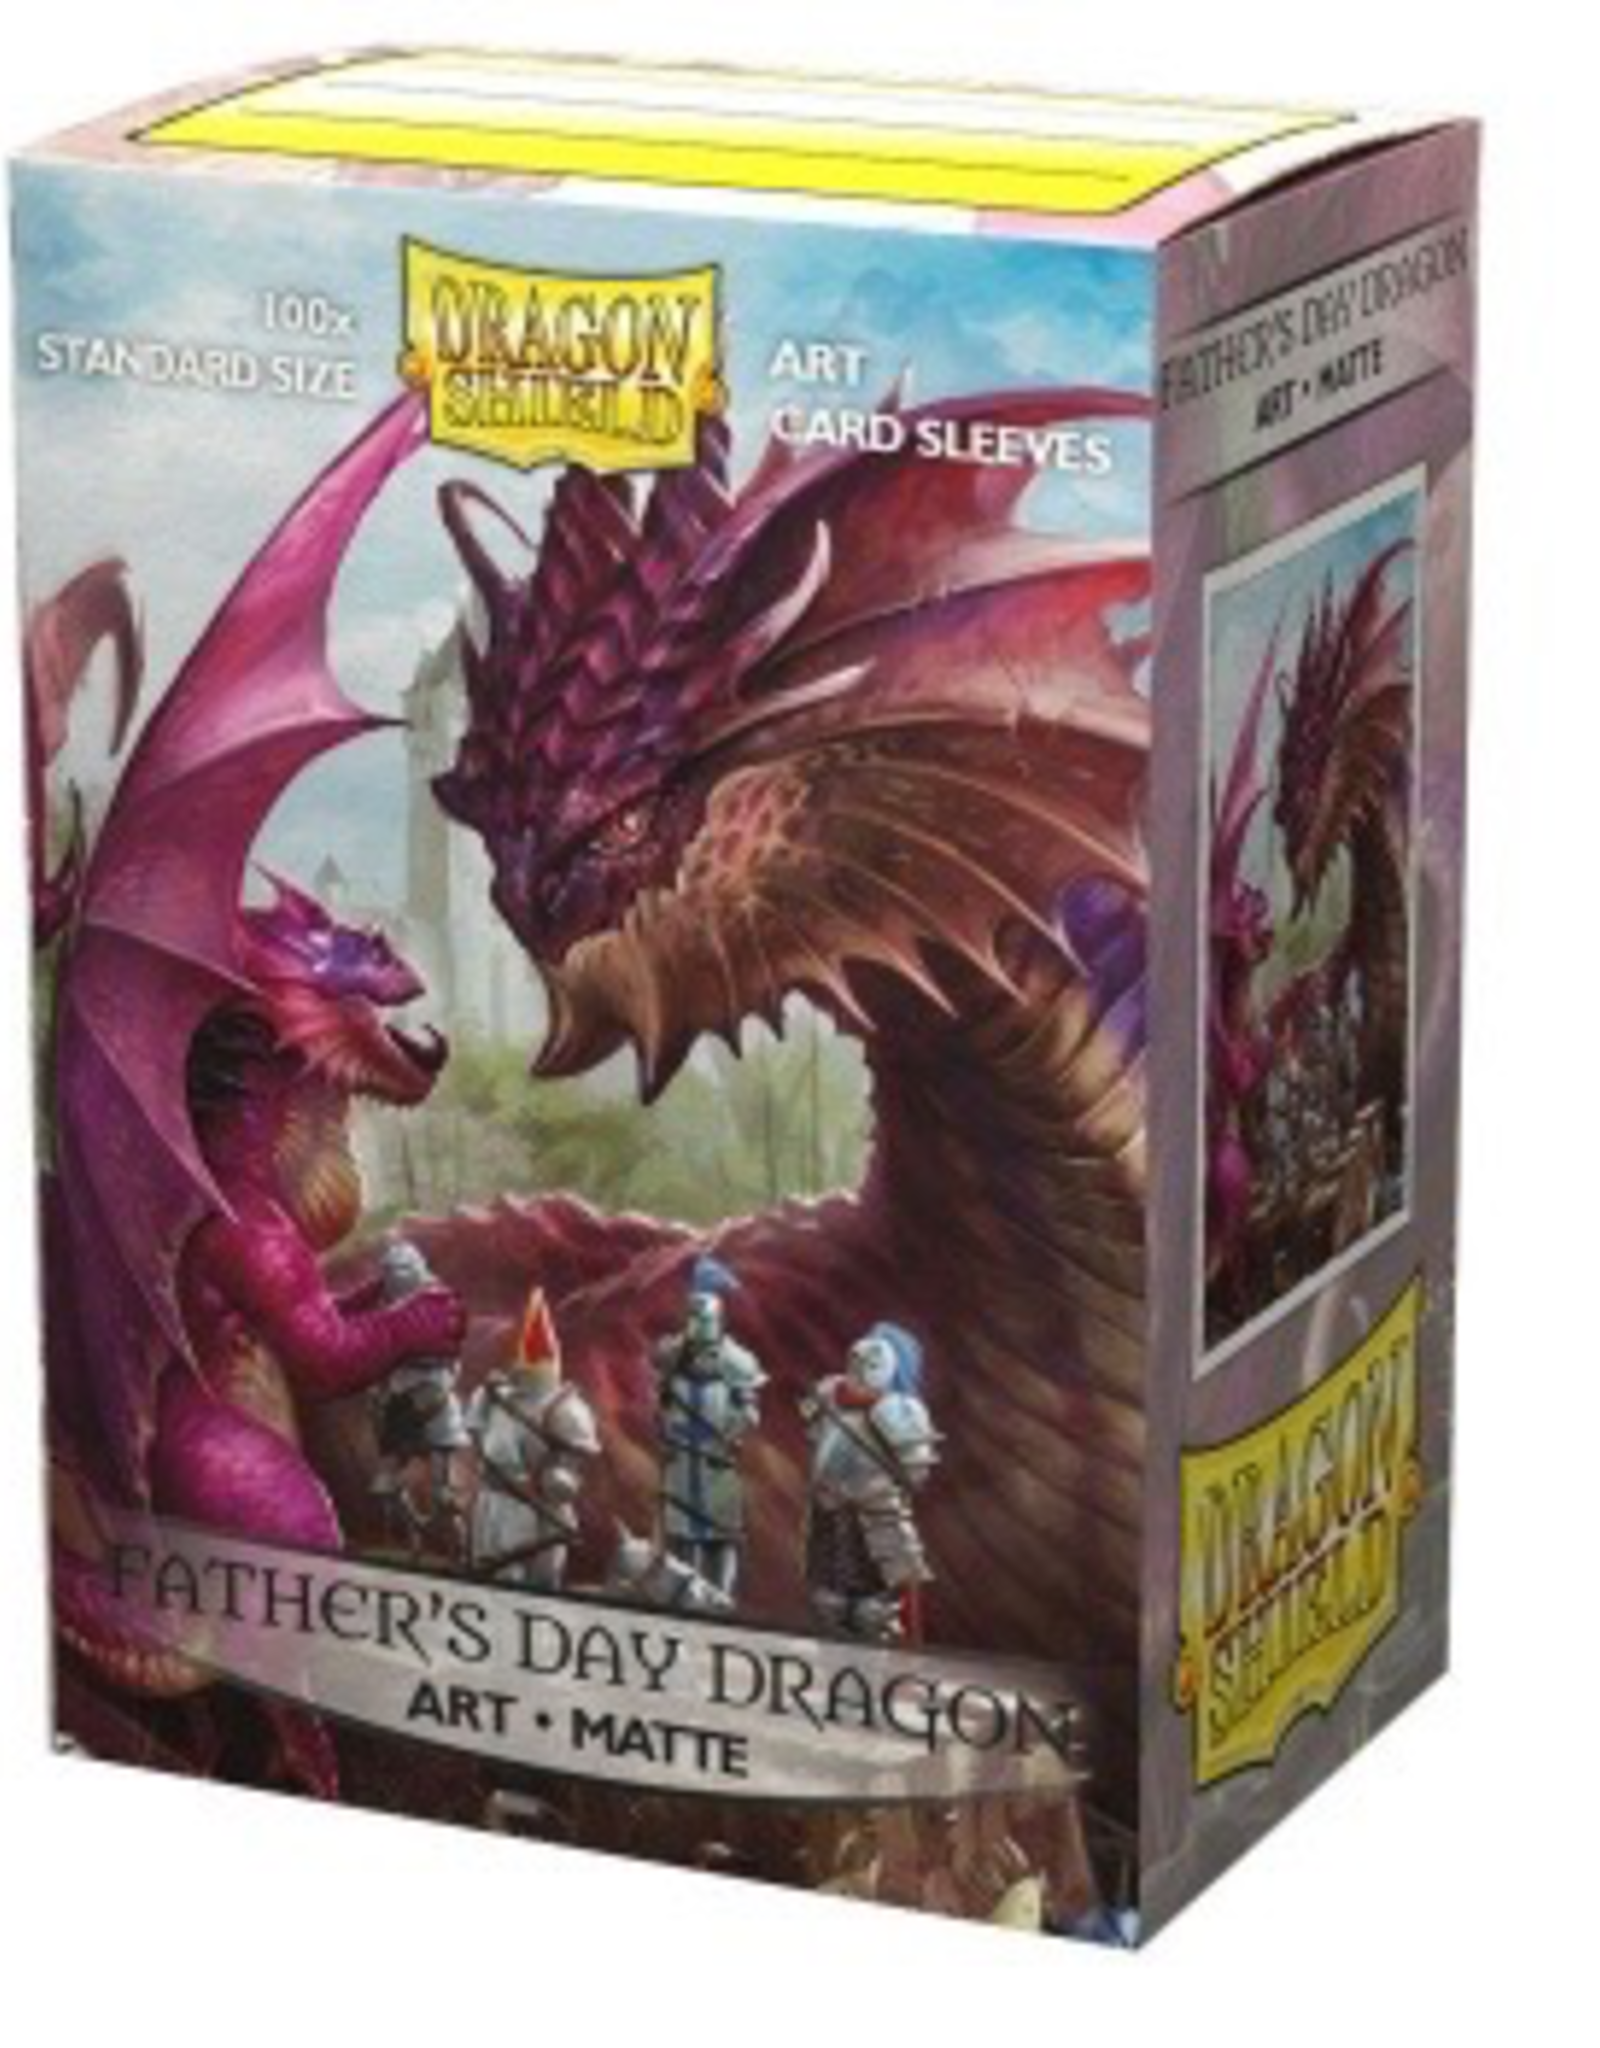 DS - Standard Sleeves Dragon Shield Matte Art Sleeves - Father's Day Dragon 2020 (100 Sleeves)